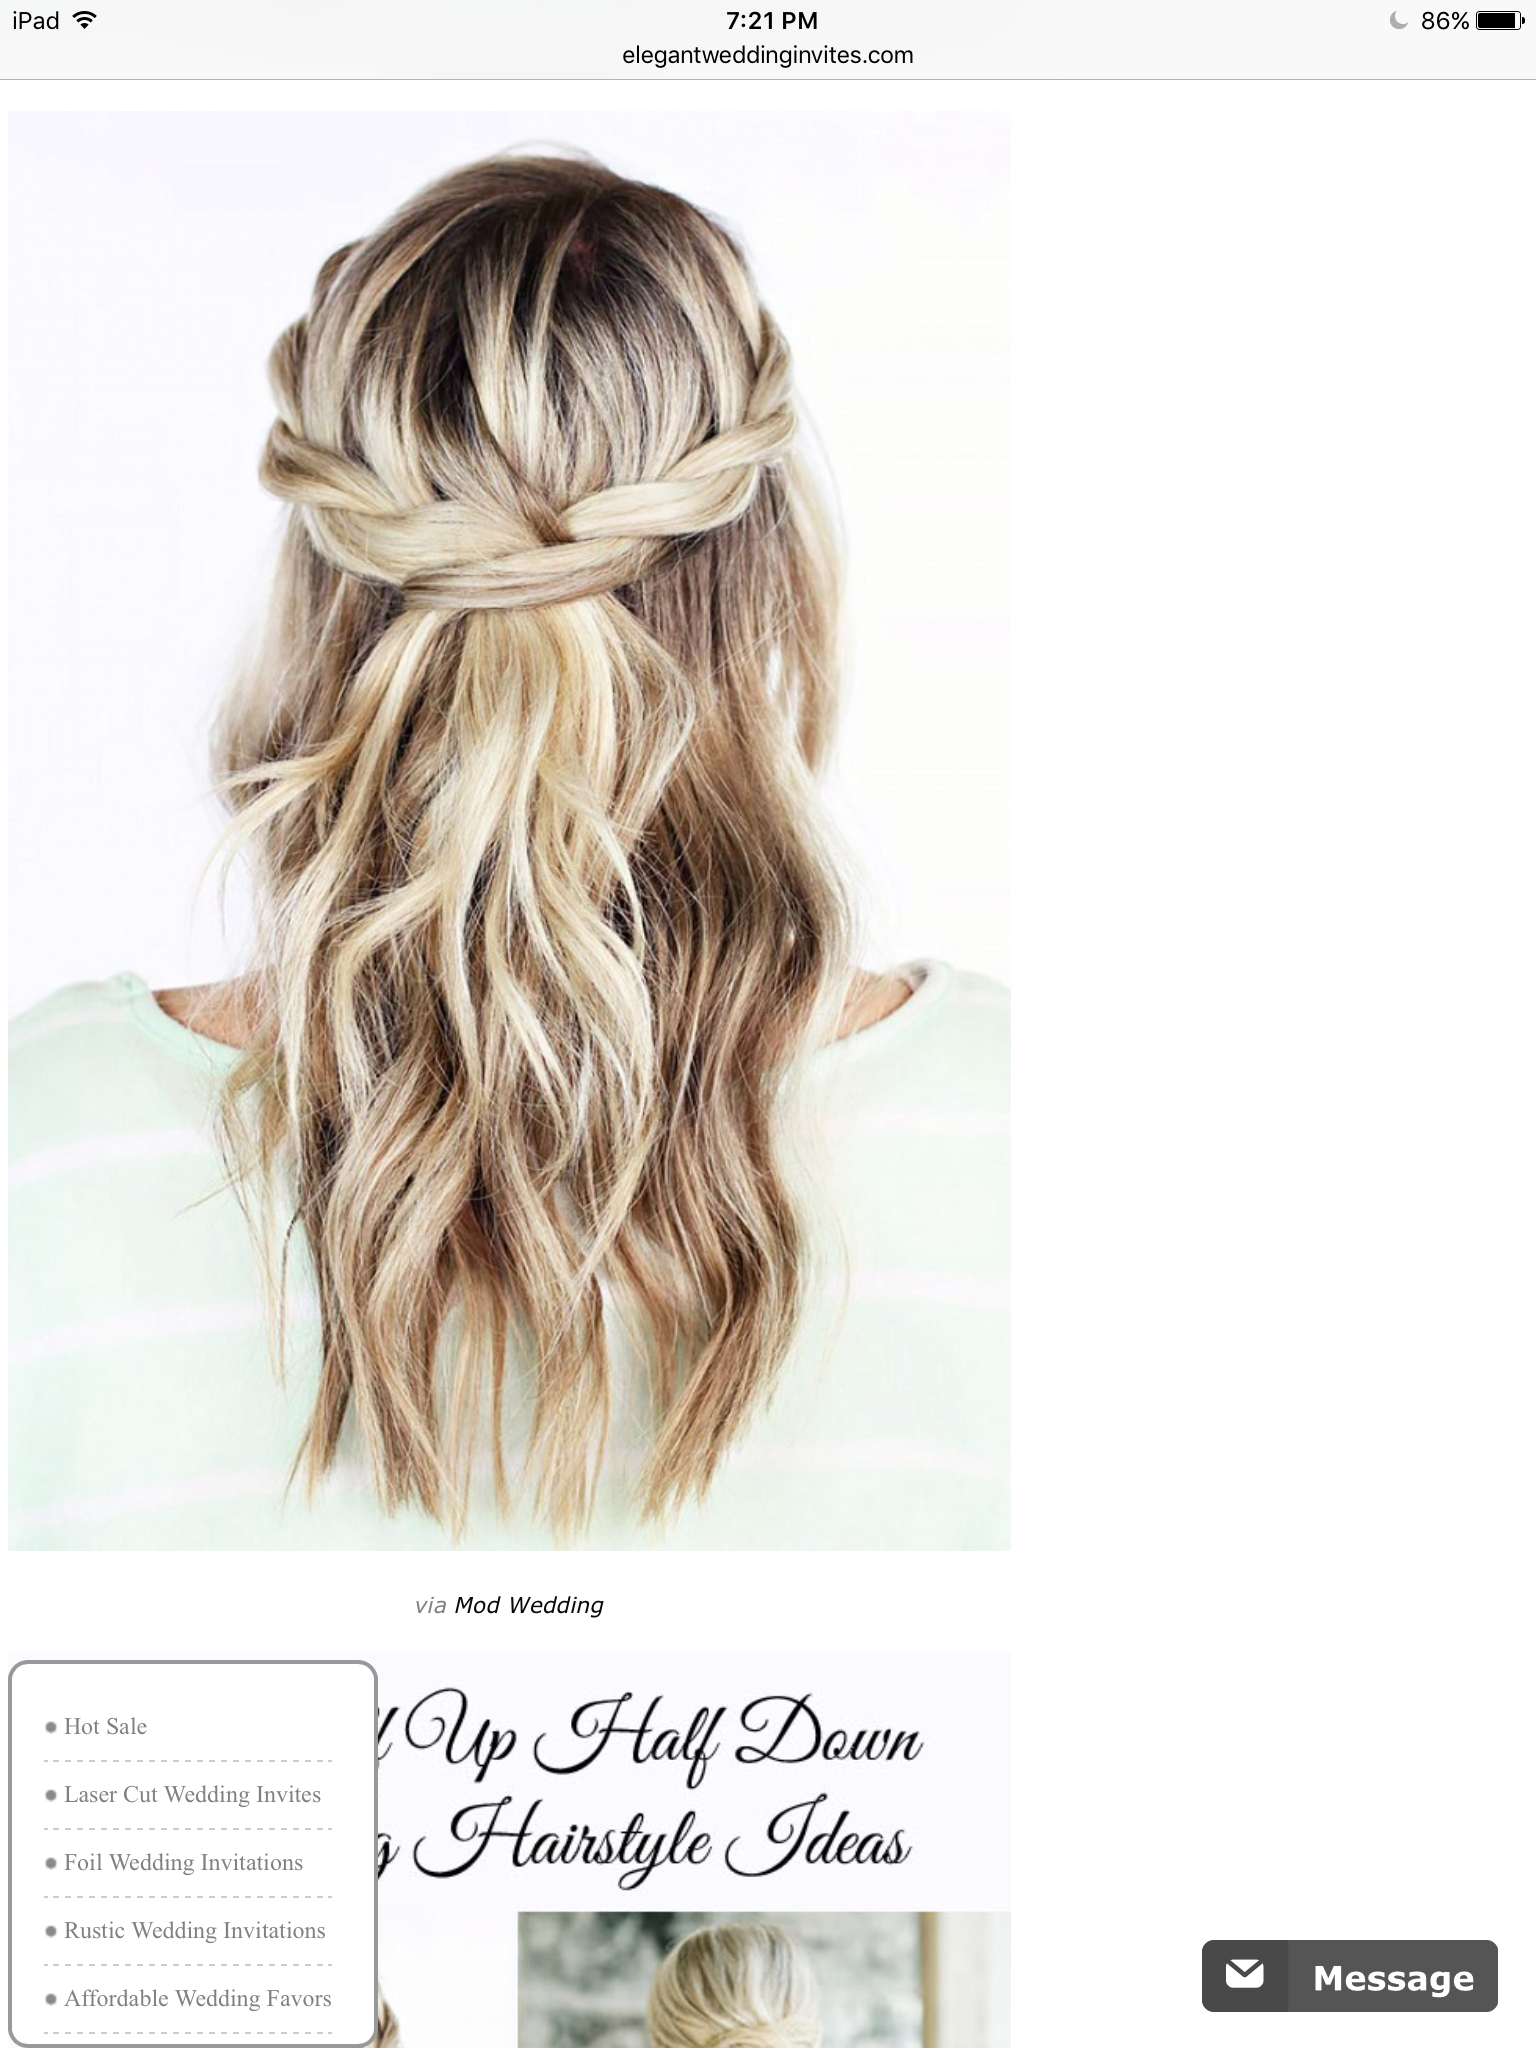 Pin by Beth on C wedding hair and hair bands   Pinterest   Hair band